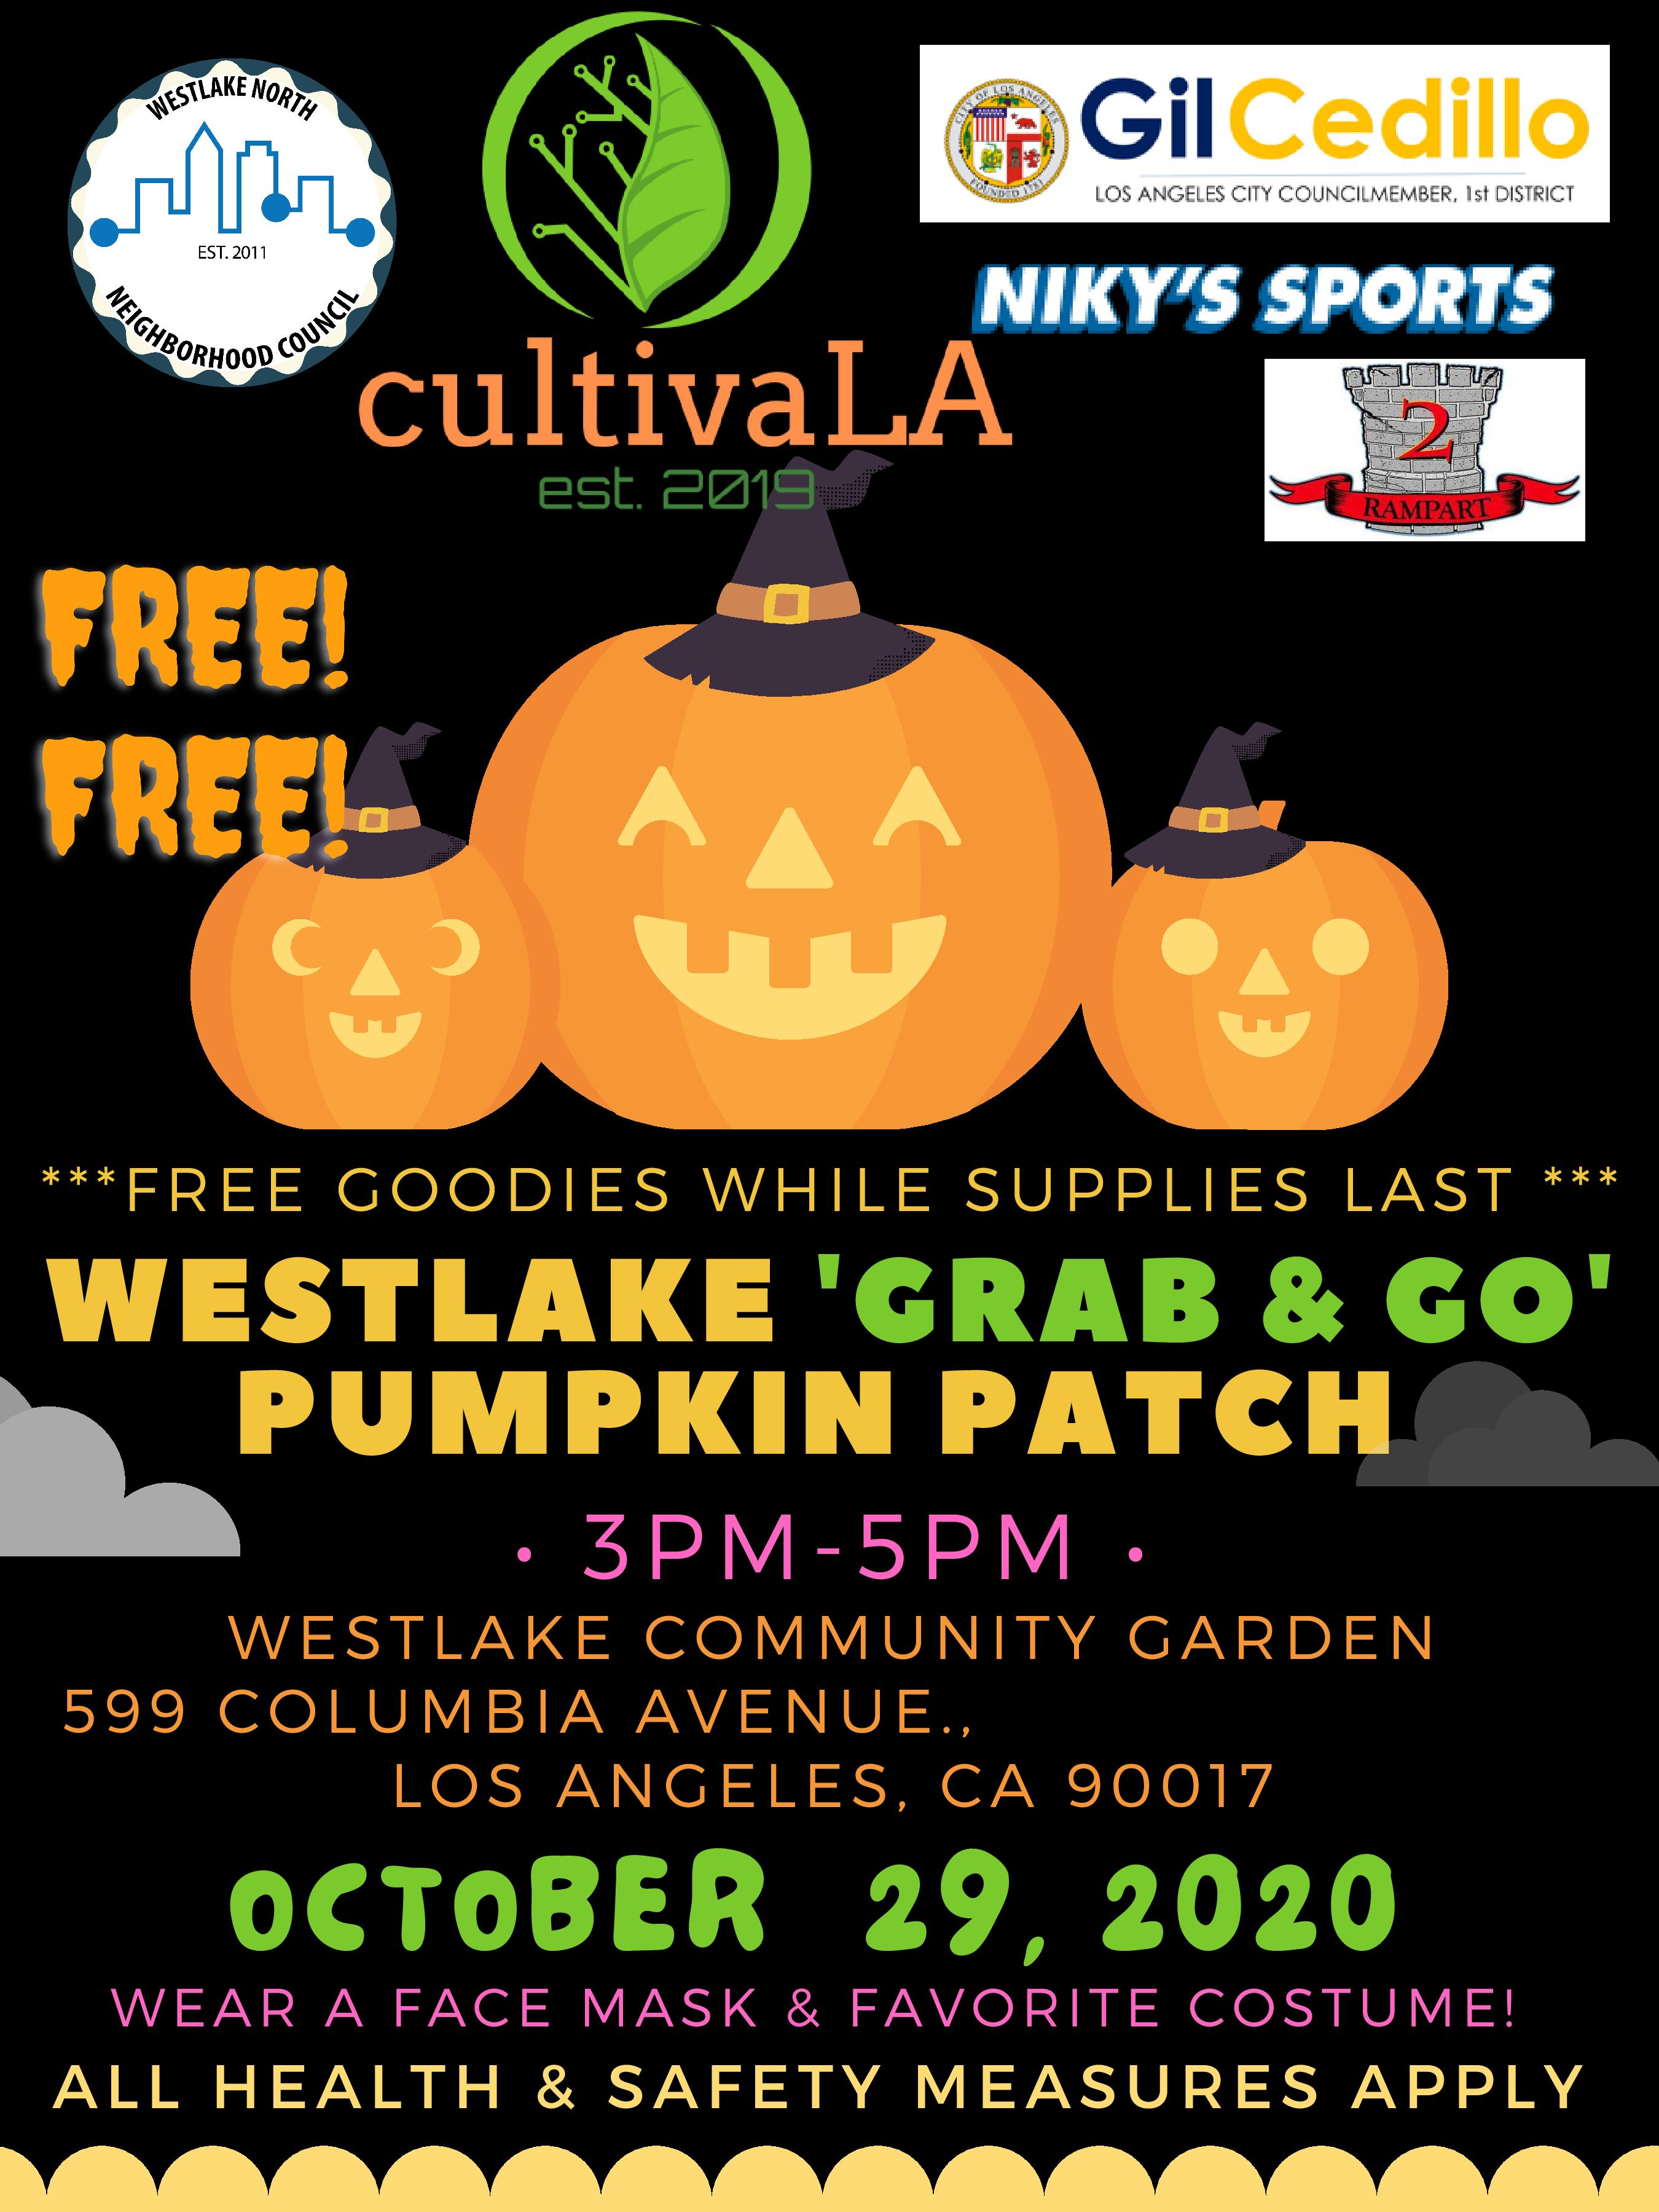 Westlake Grab & Go Pumpkin Patch